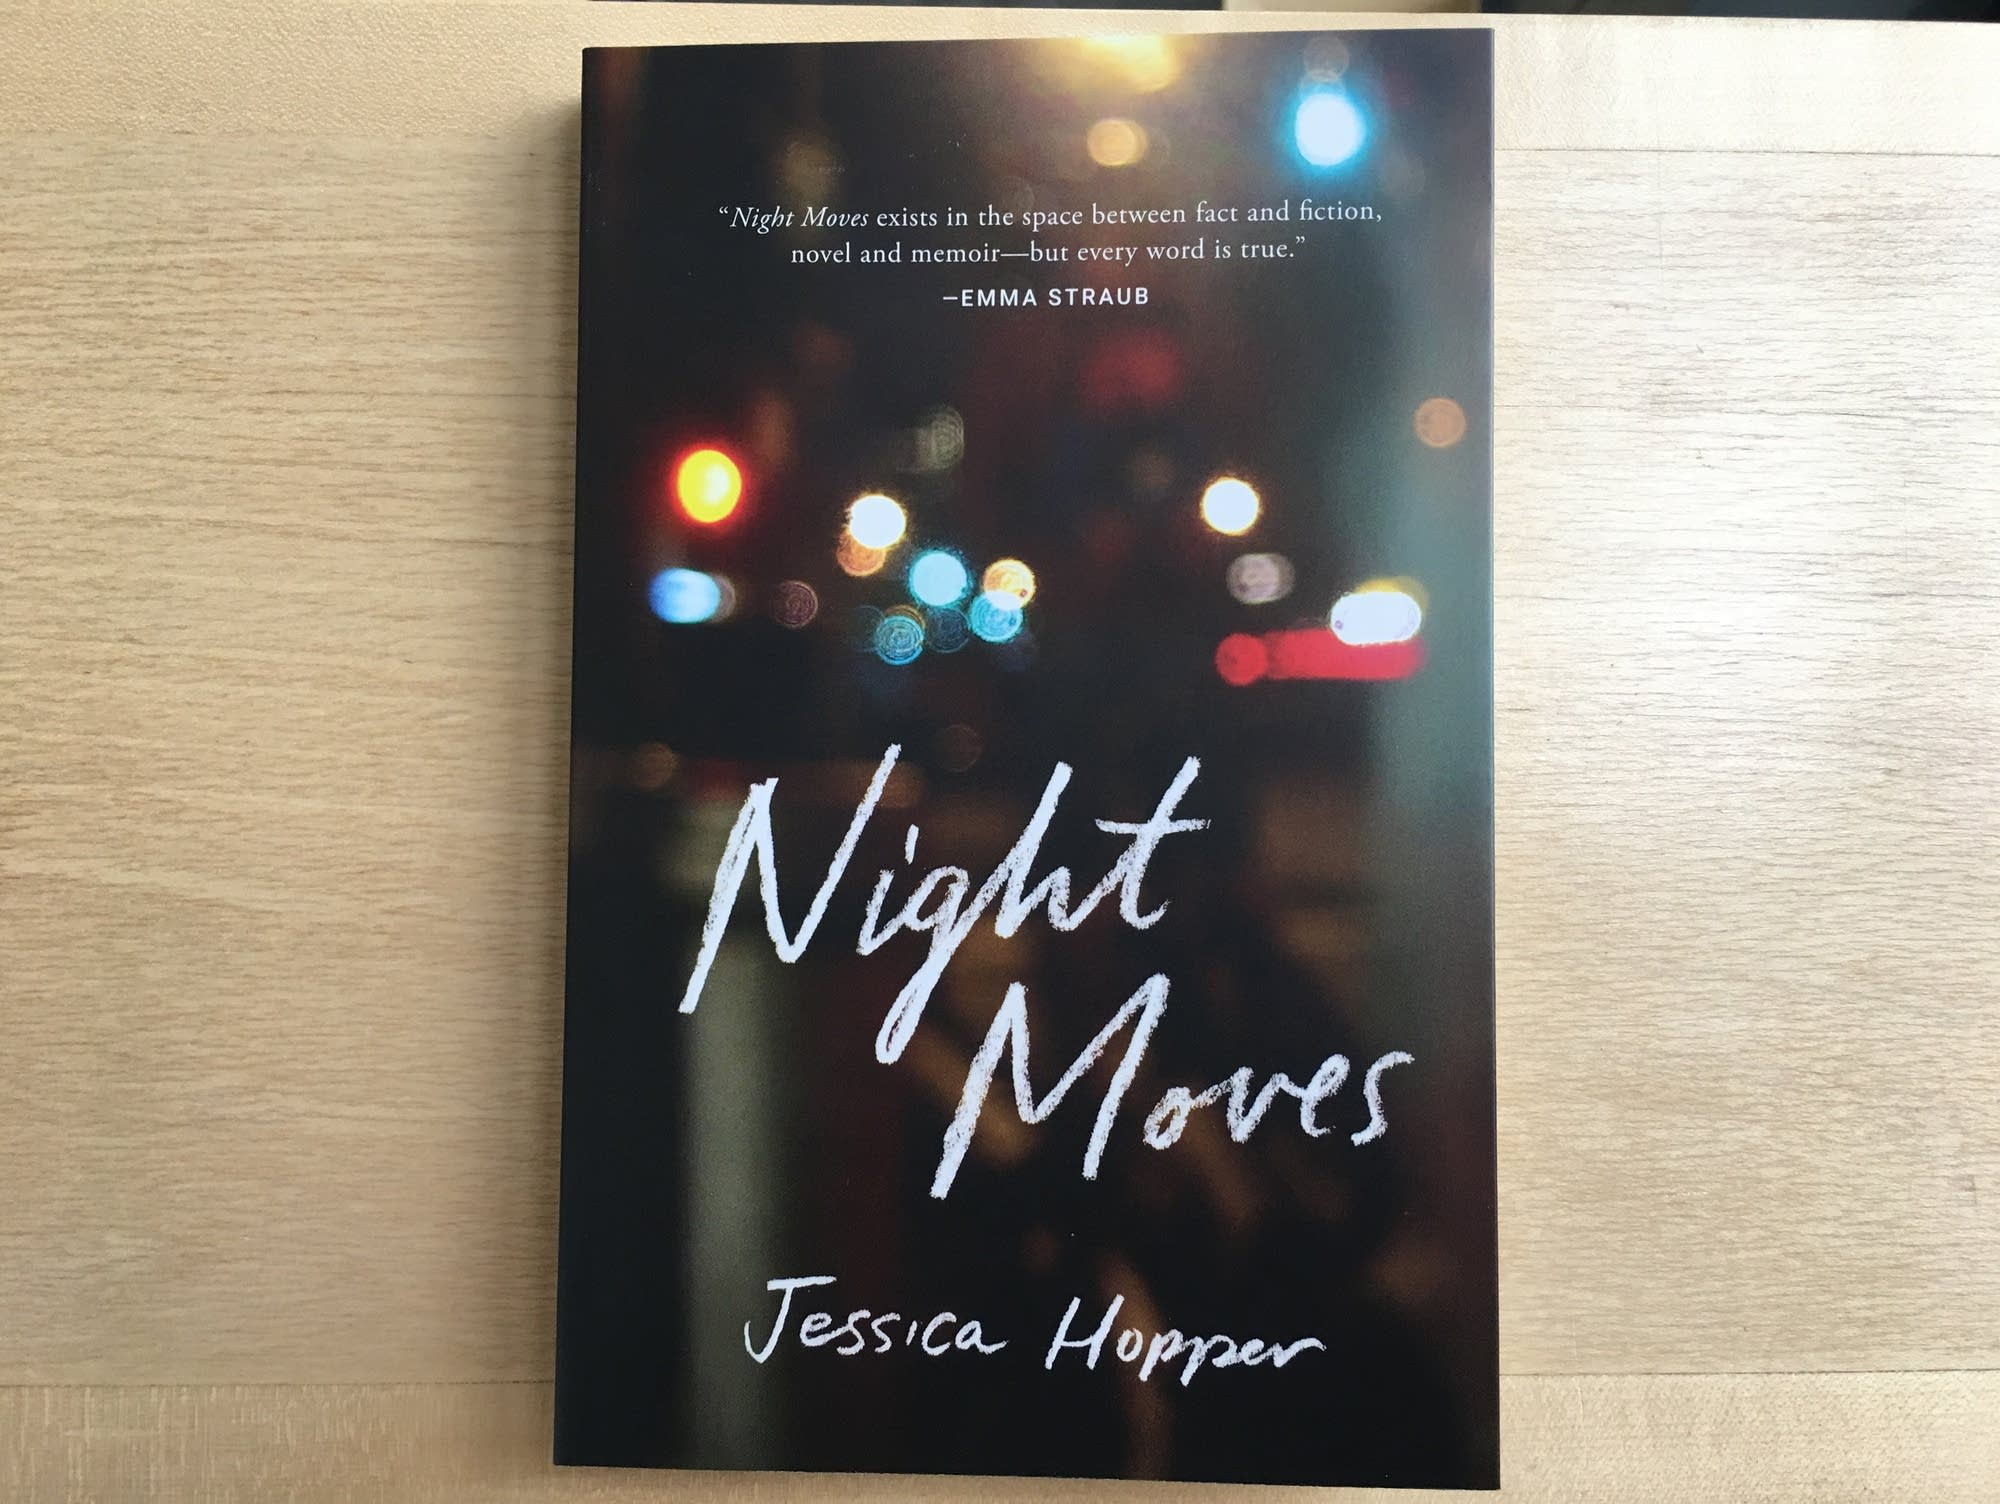 Jessica Hopper's 'Night Moves.'